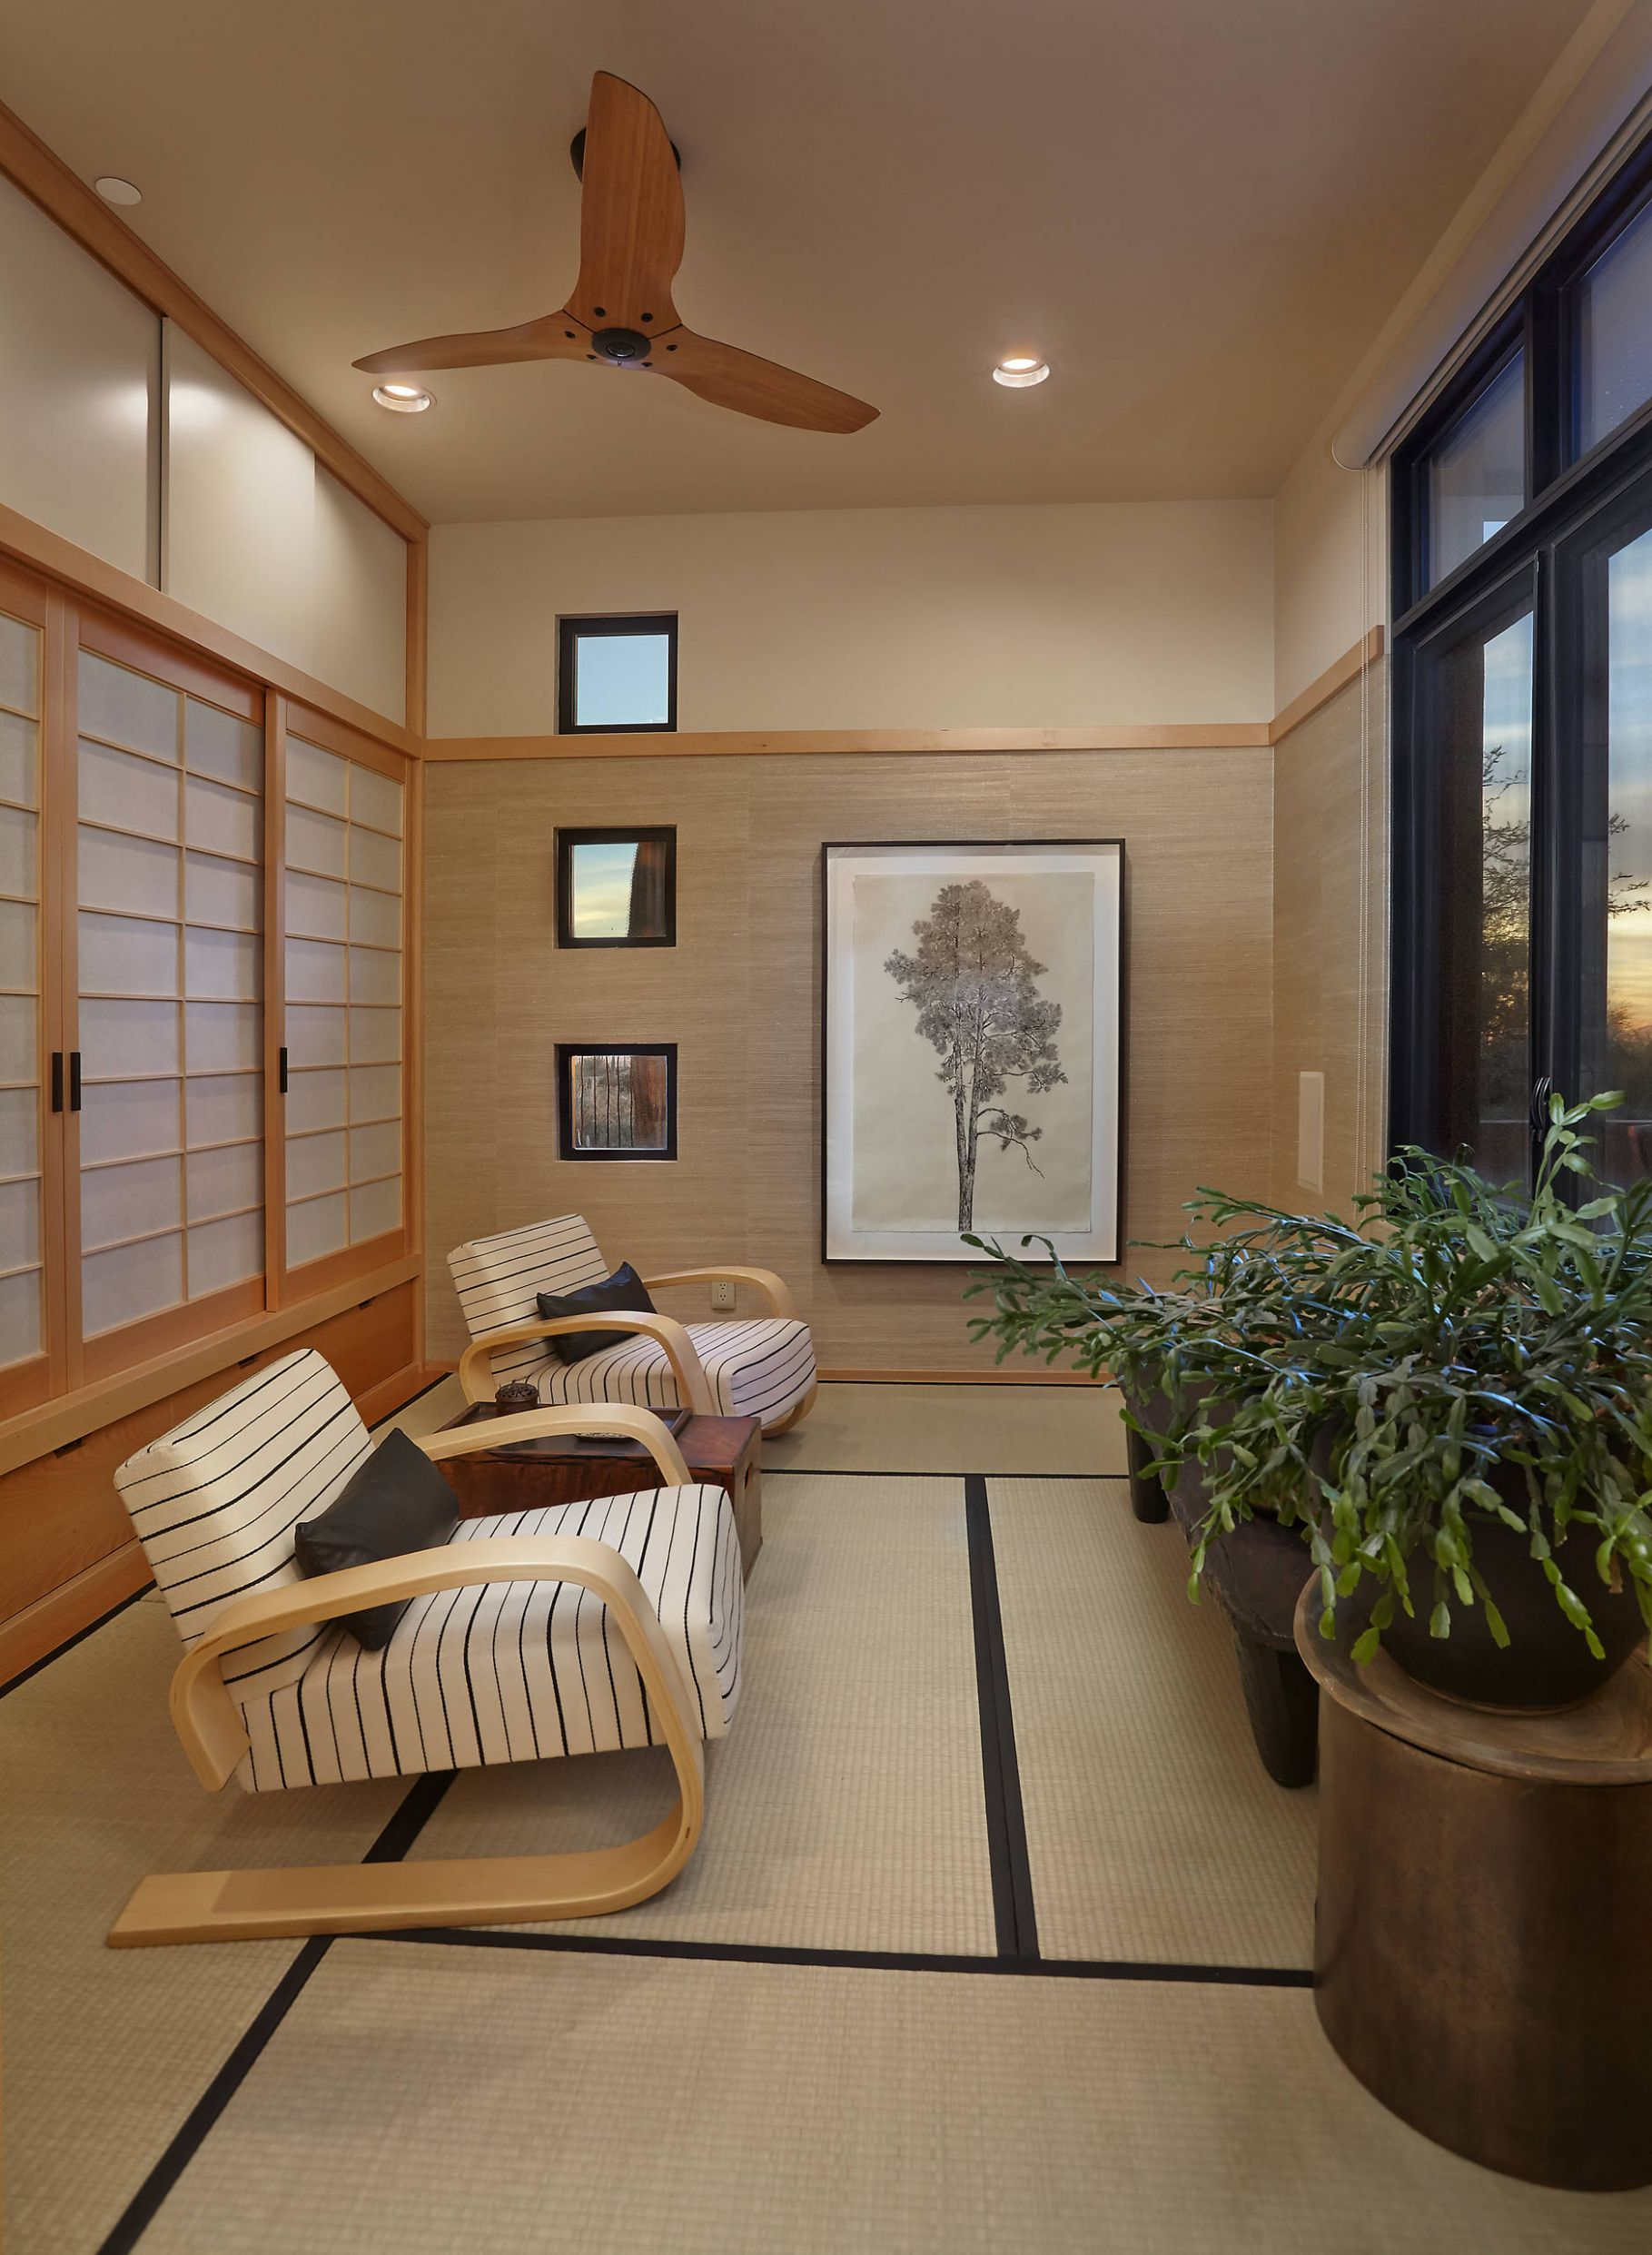 9 Beautiful Small Asian Sunroom Pictures & Ideas | Houzz - zen sunroom ideas